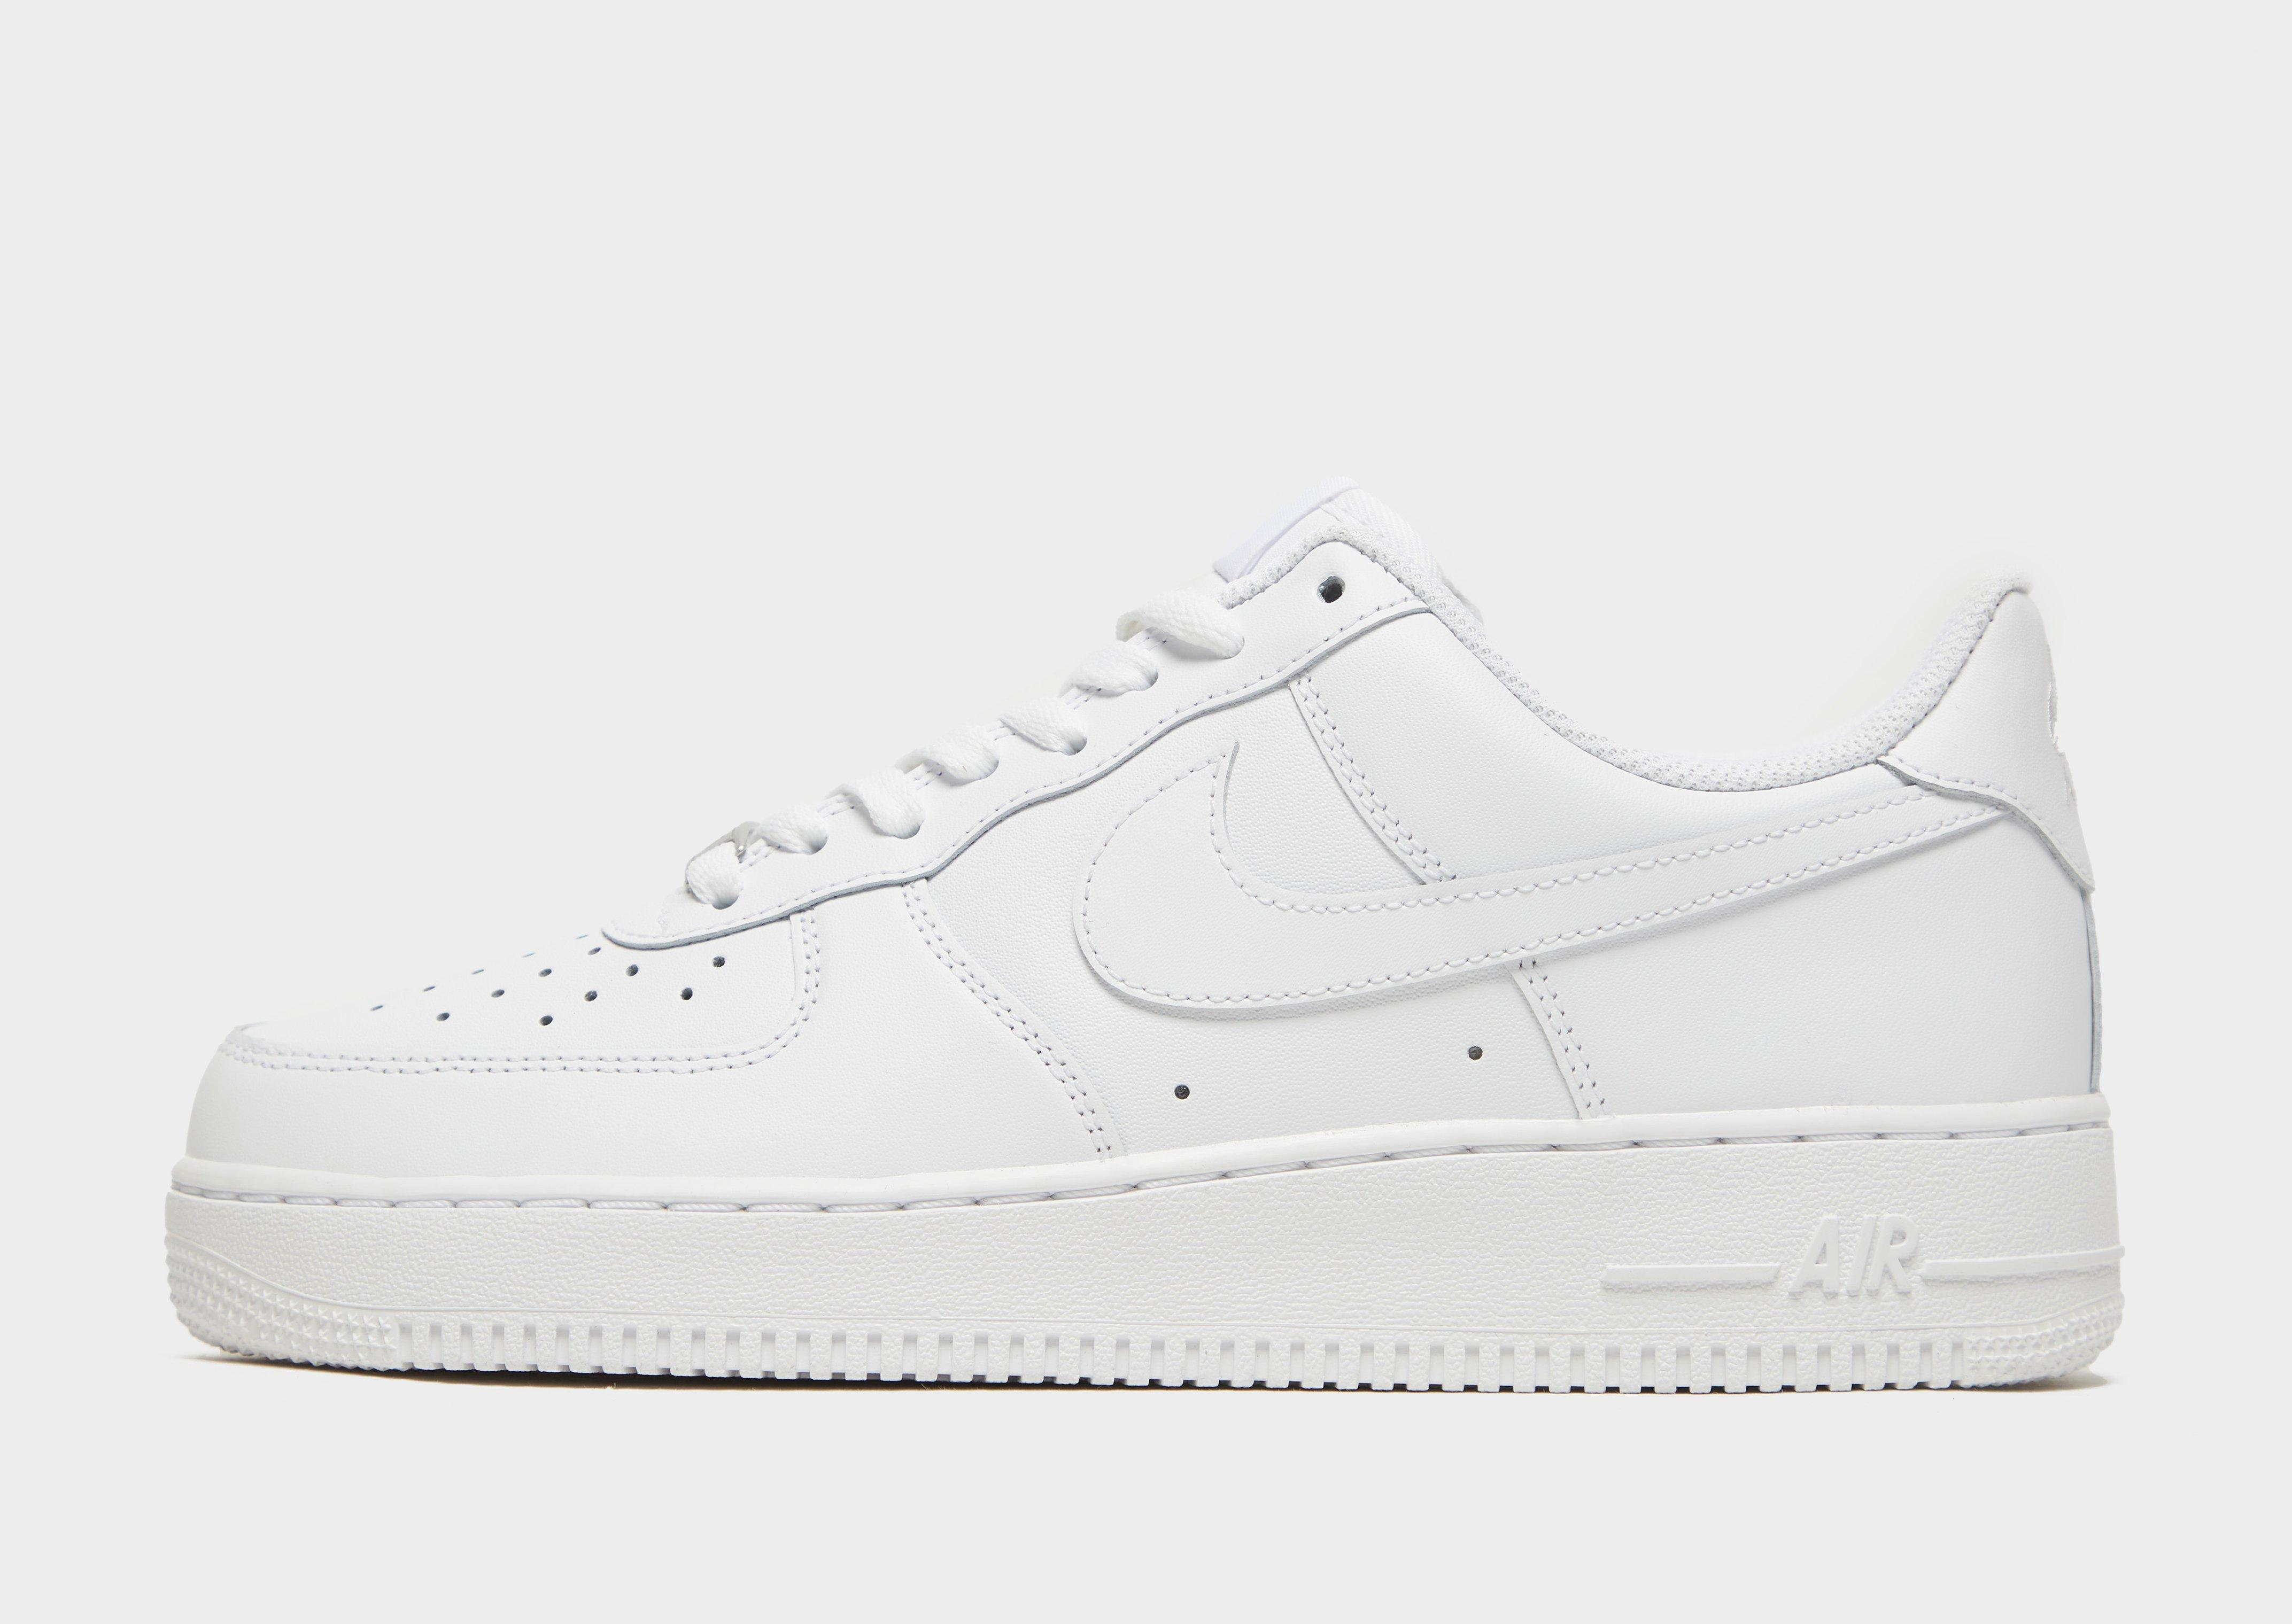 Nike Air Force Supérieure Blanche Faible